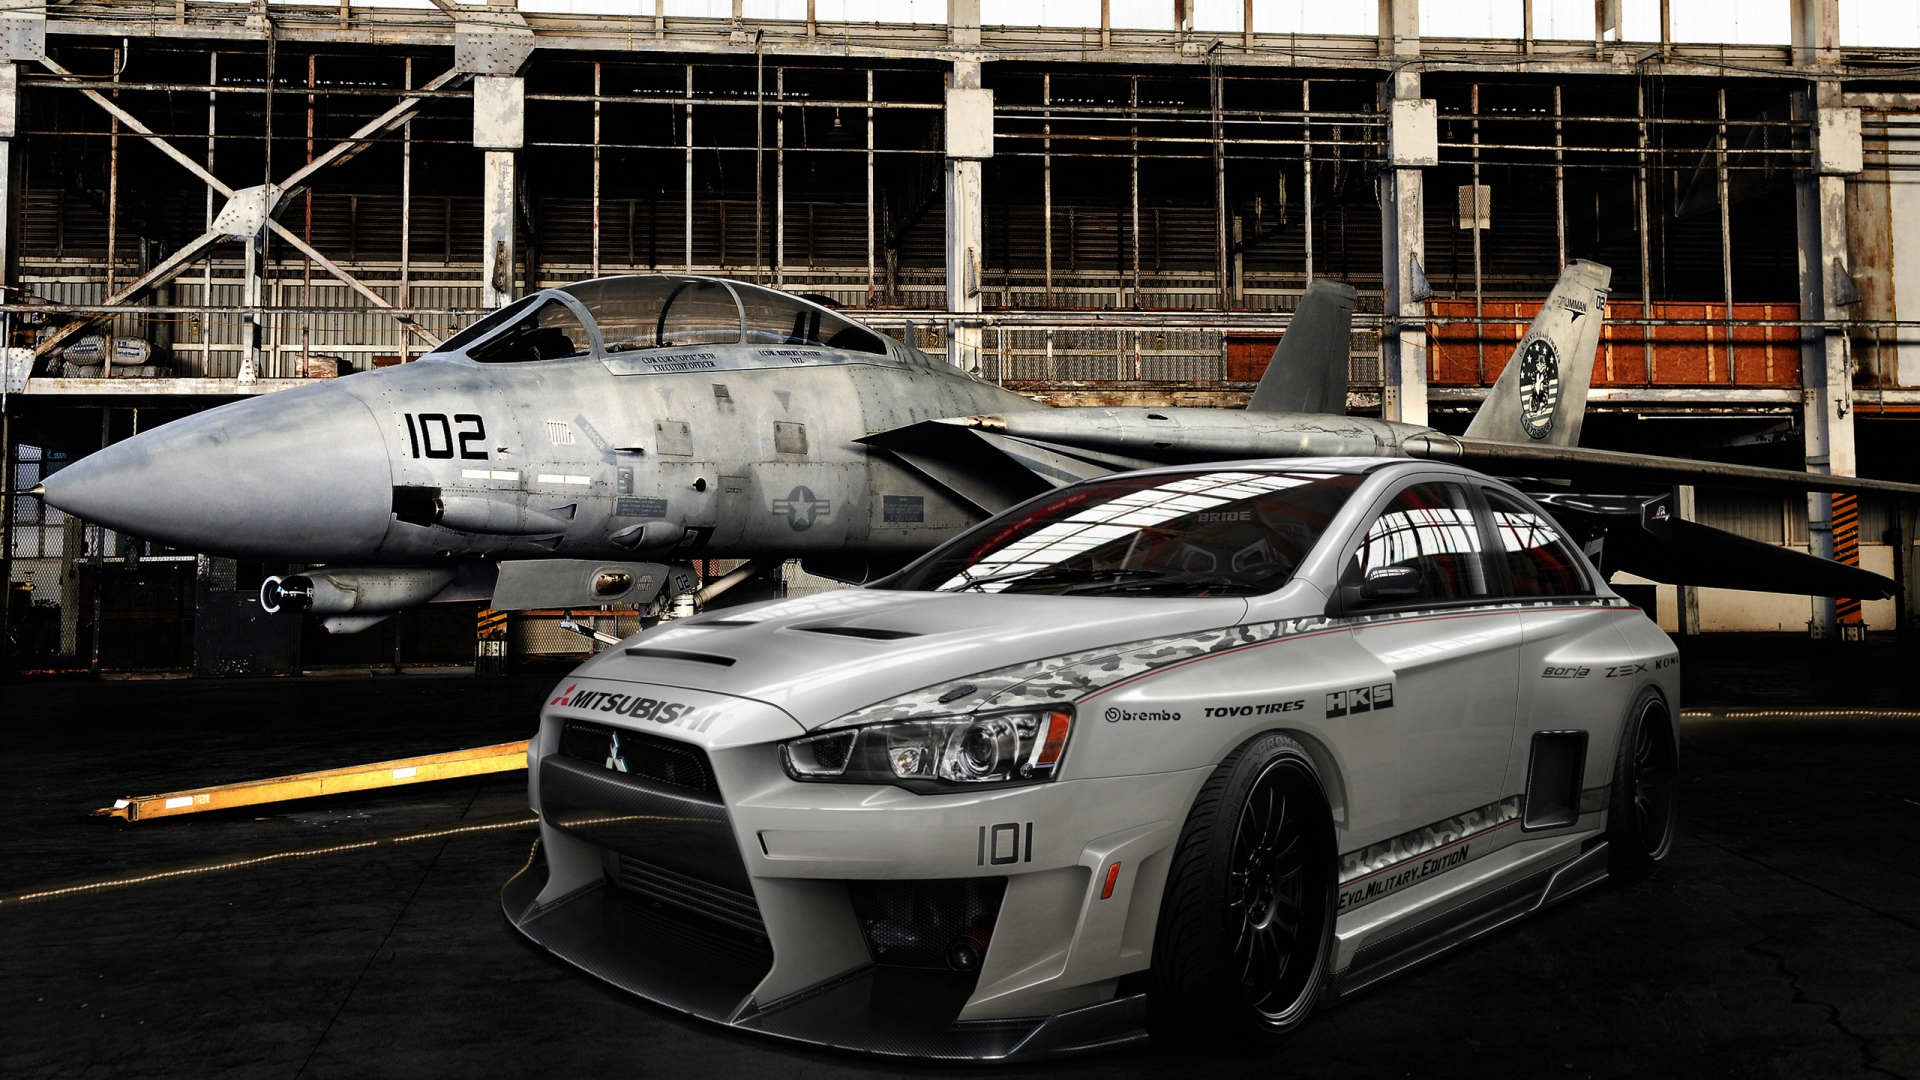 Mitsubishi Lancer Evolution Military for 1920 x 1080 HDTV 1080p resolution